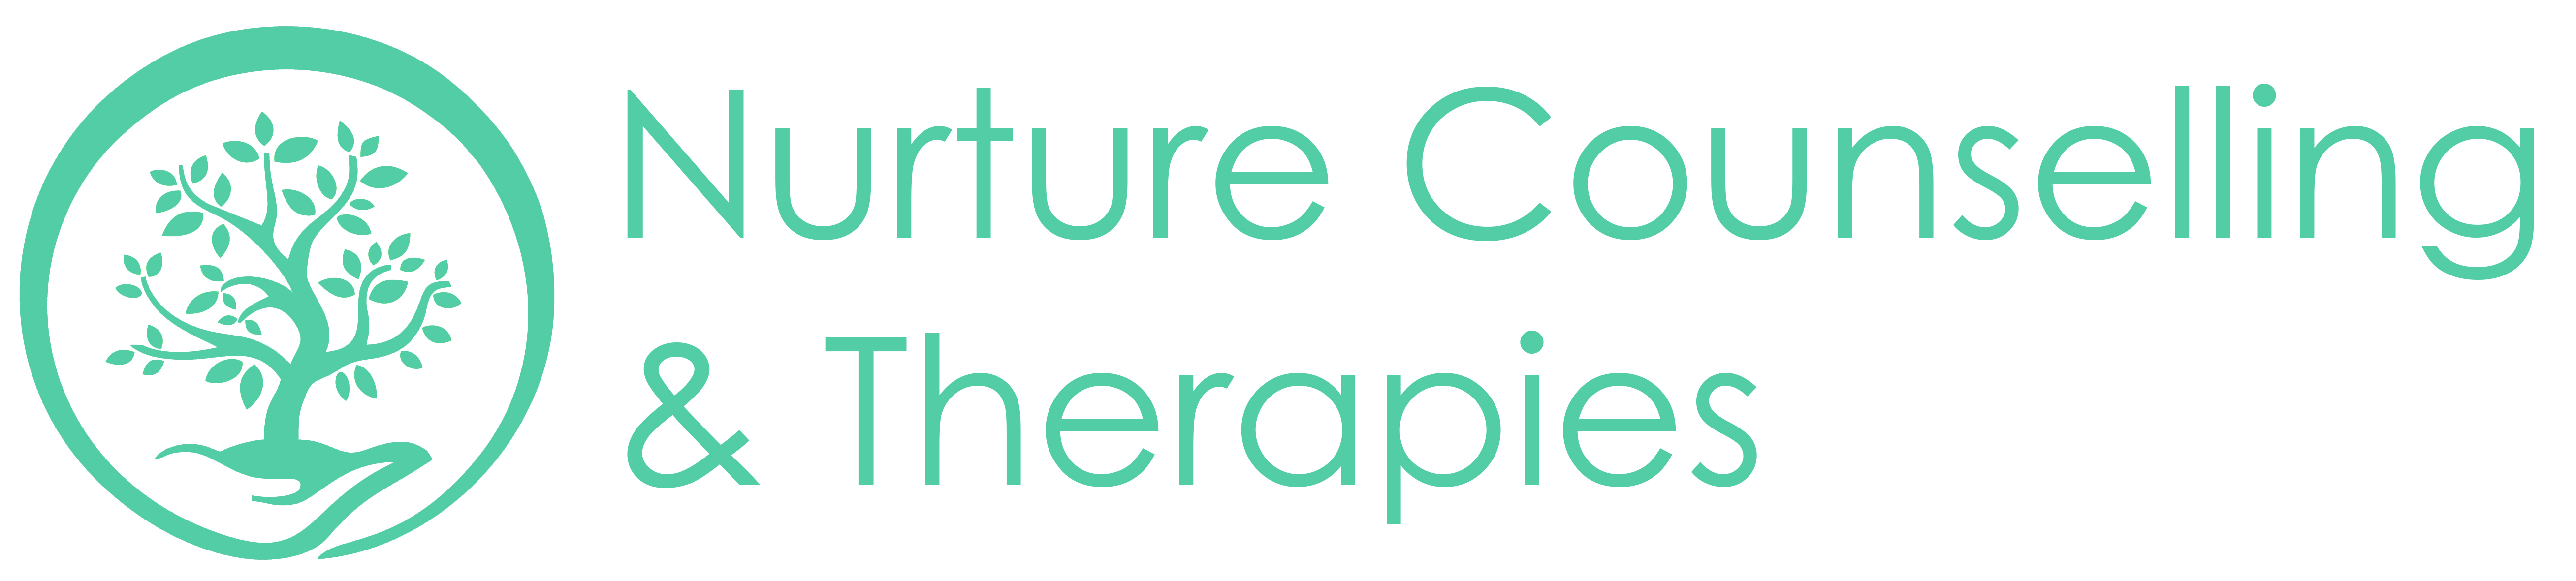 Nurture Counselling & Therapies